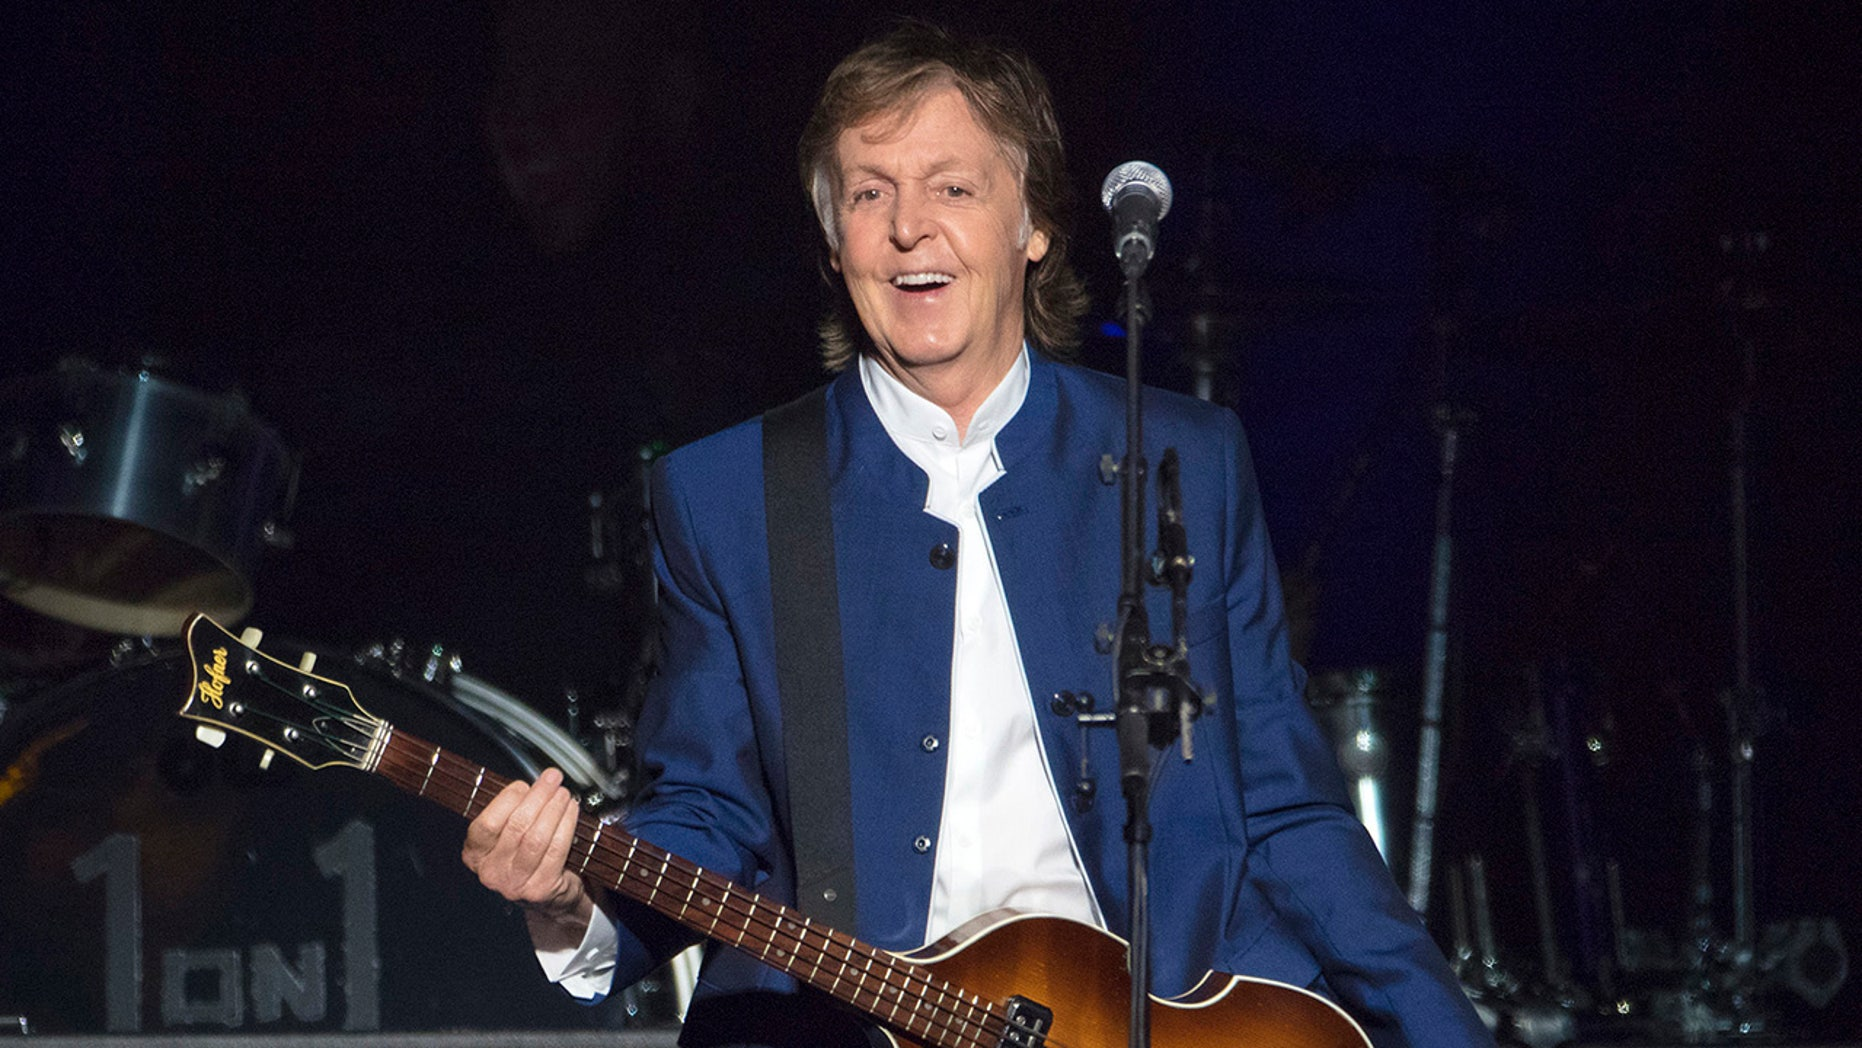 Former Beatle Paul McCartney paid a visit to his old stomping grounds this week, returning to the famed Abbey Road.